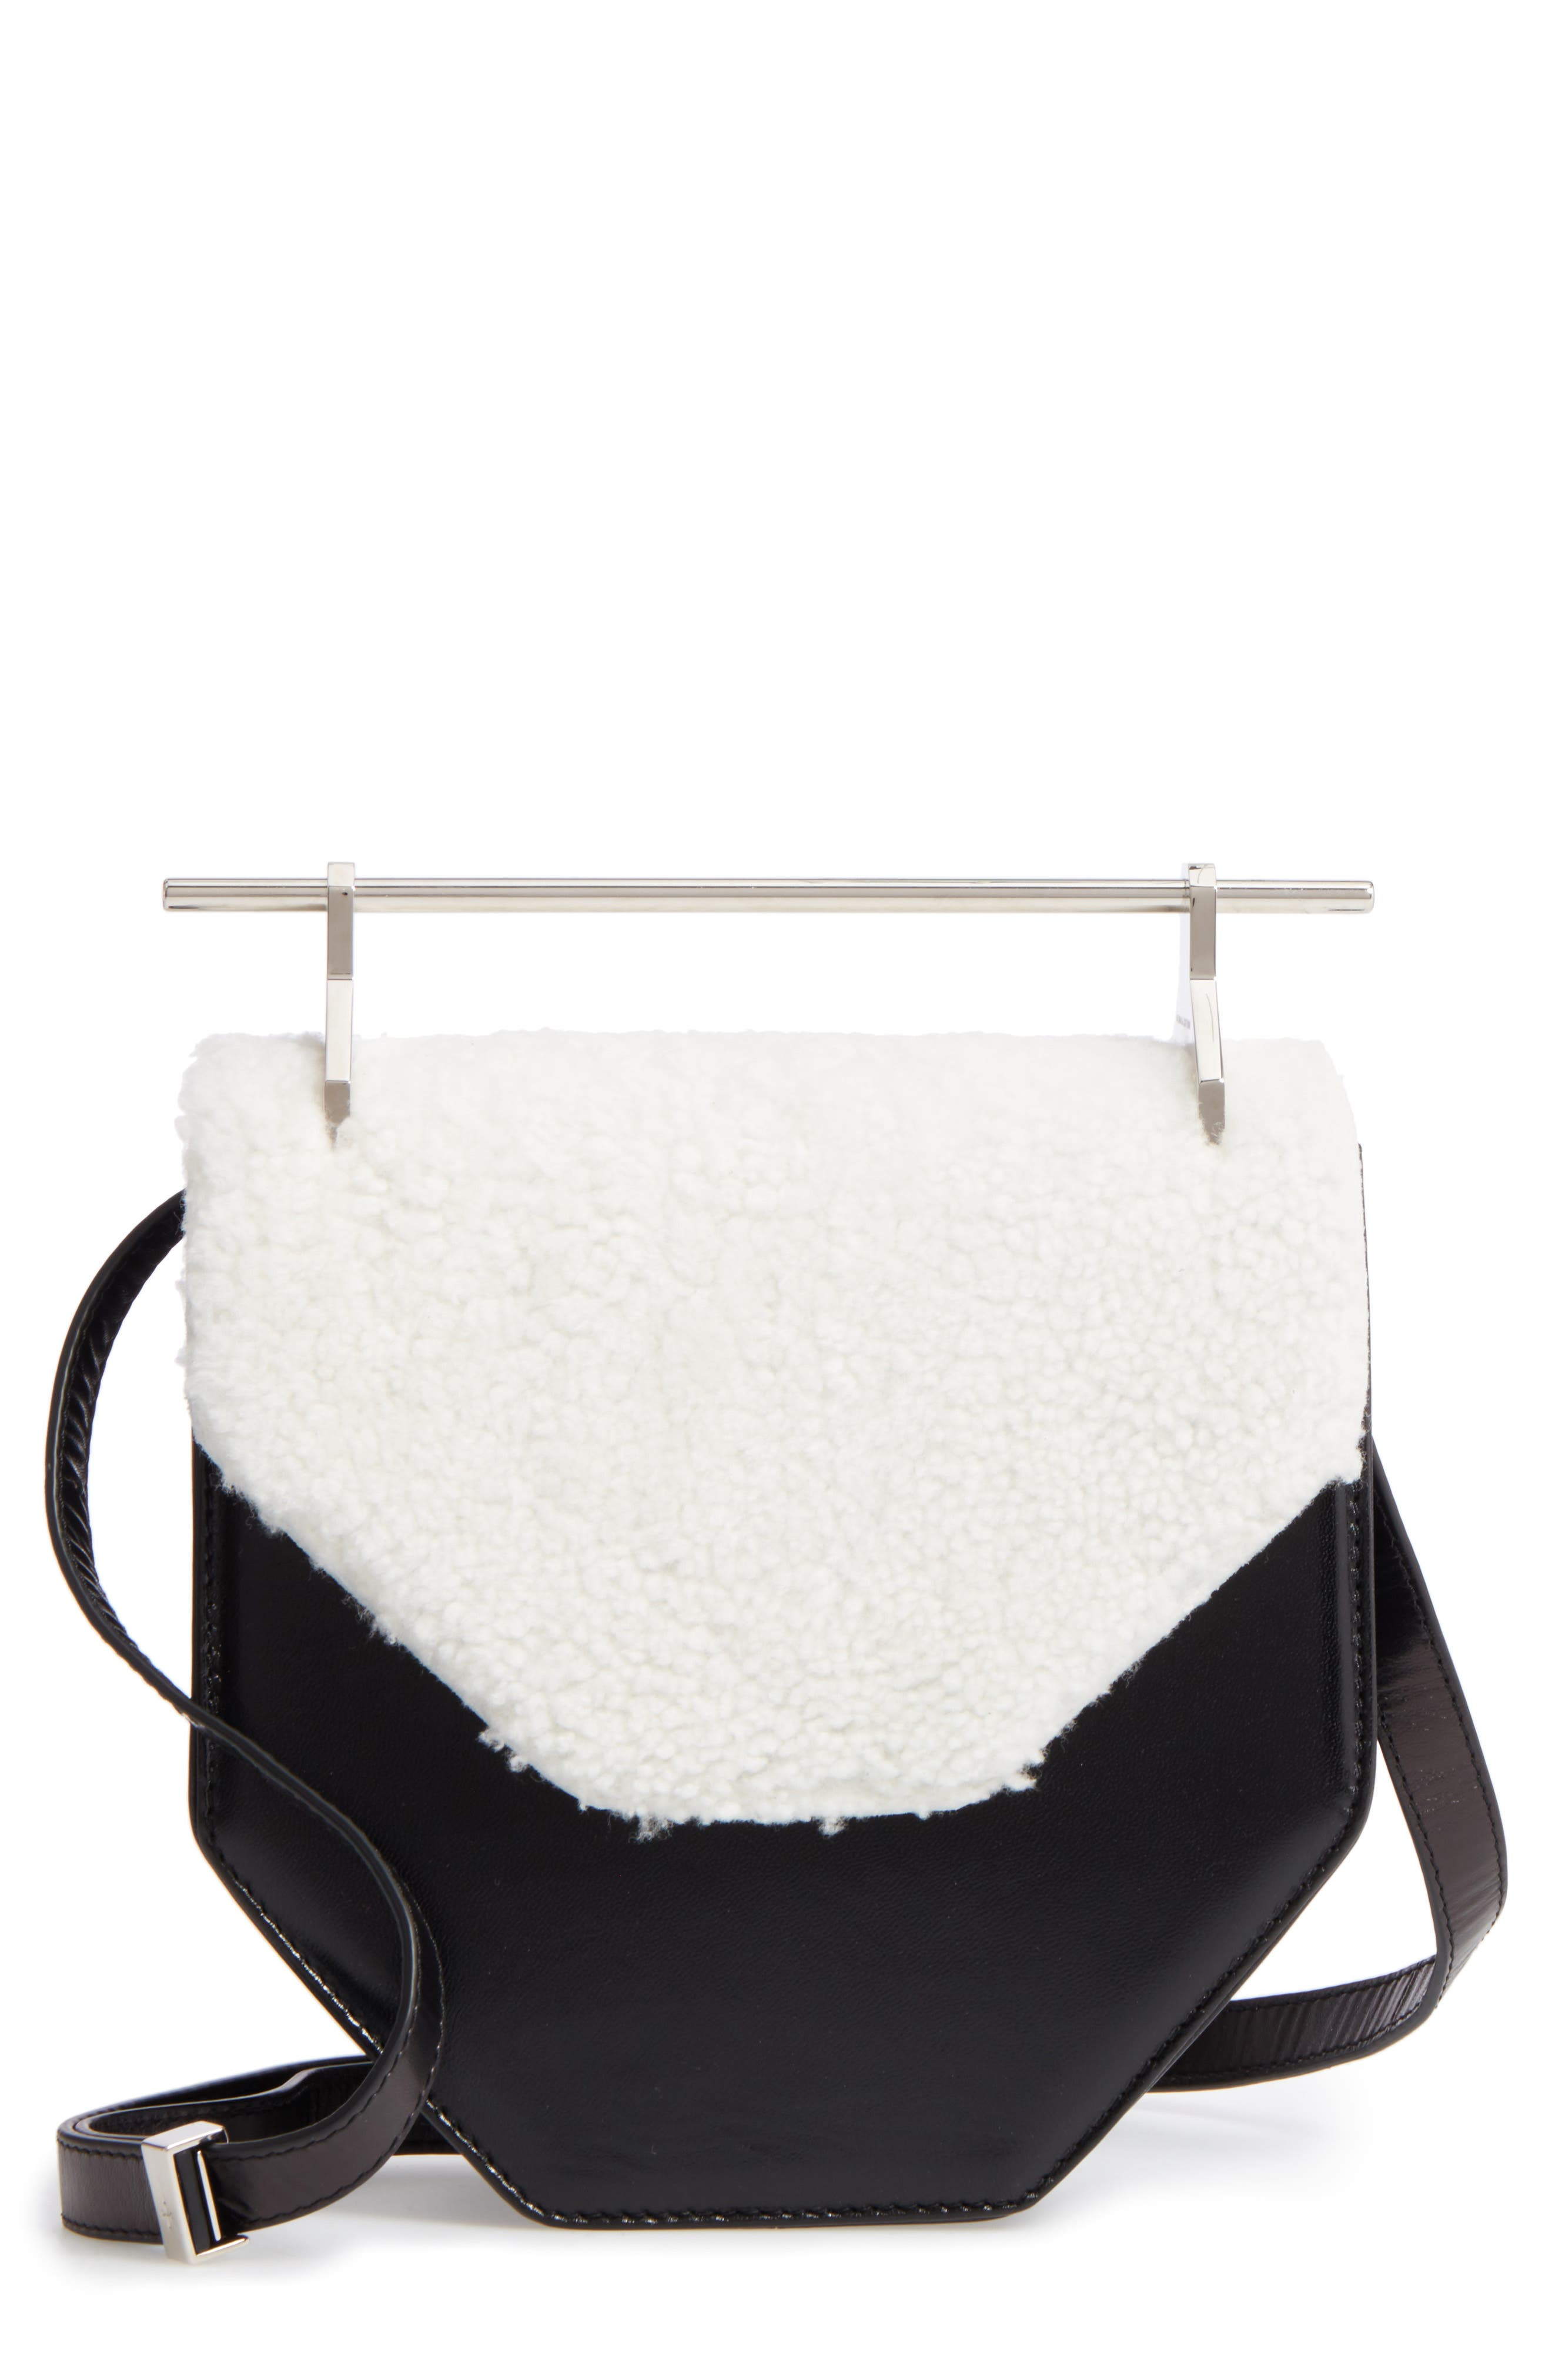 Amor Fati Leather & Genuine Shearling Shoulder Bag,                             Main thumbnail 1, color,                             Black/ White/ Silver